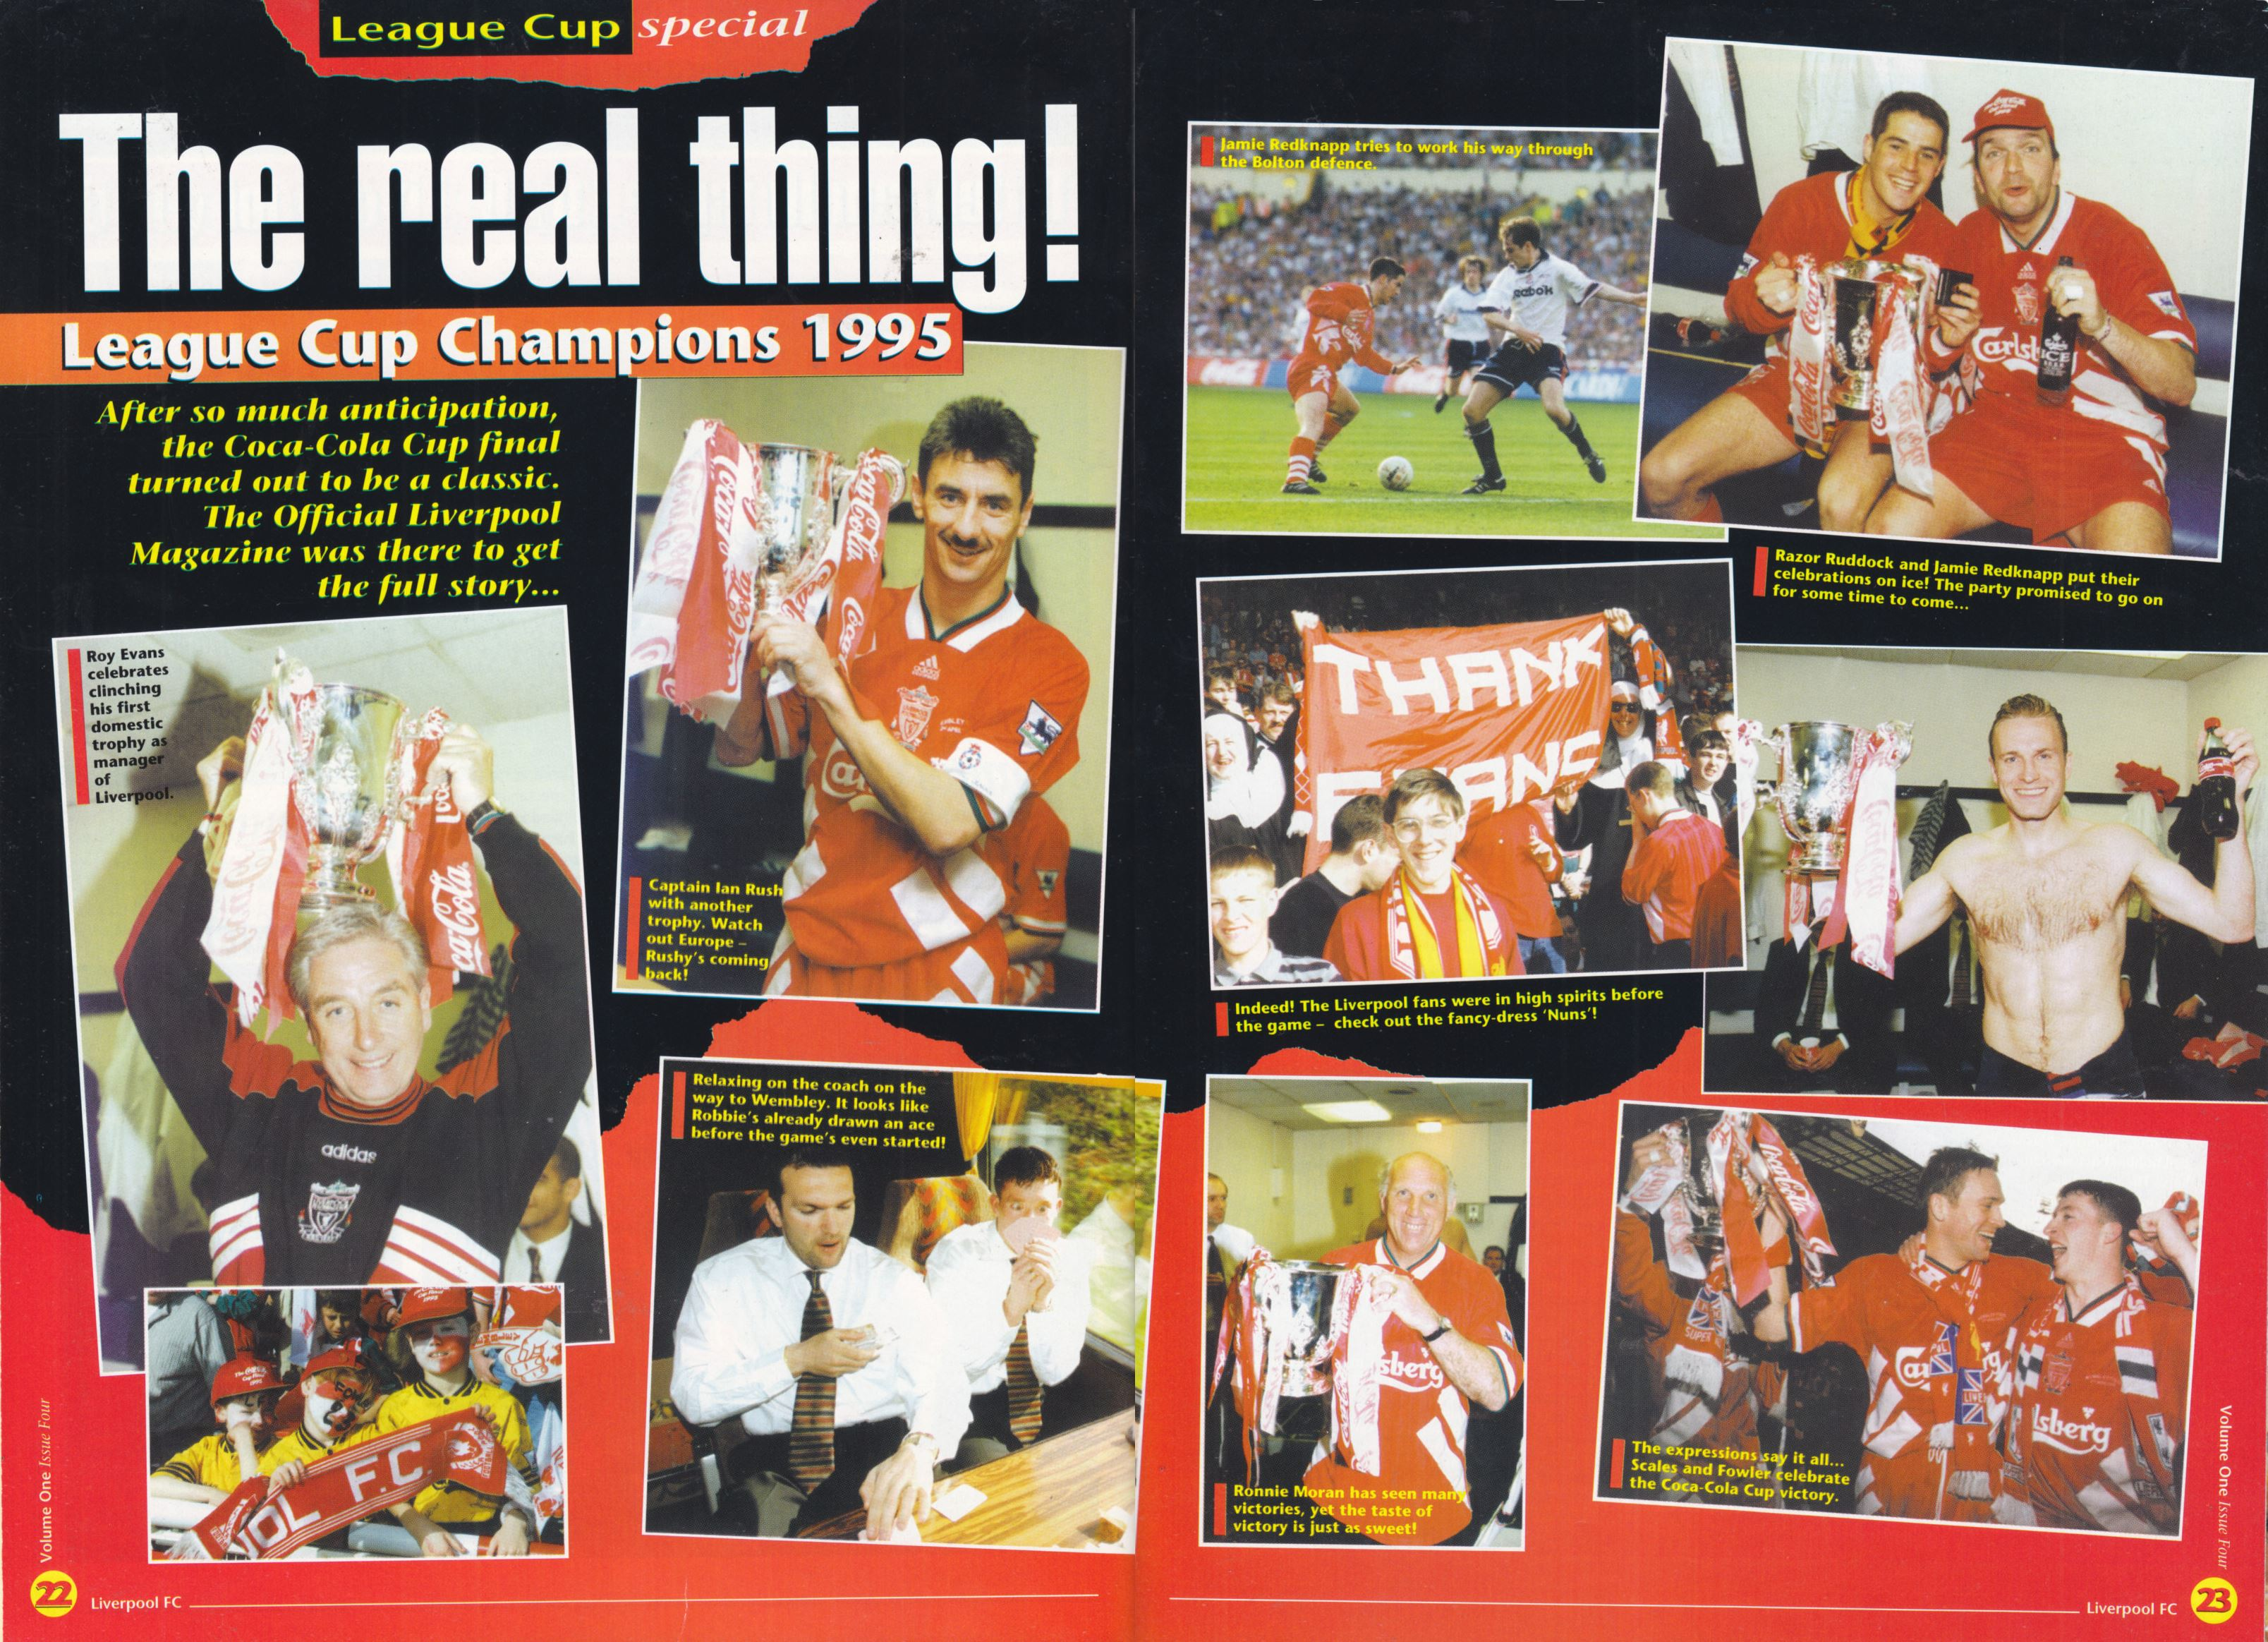 The Coca Cola Cup win celebrated in the LFC Magazine